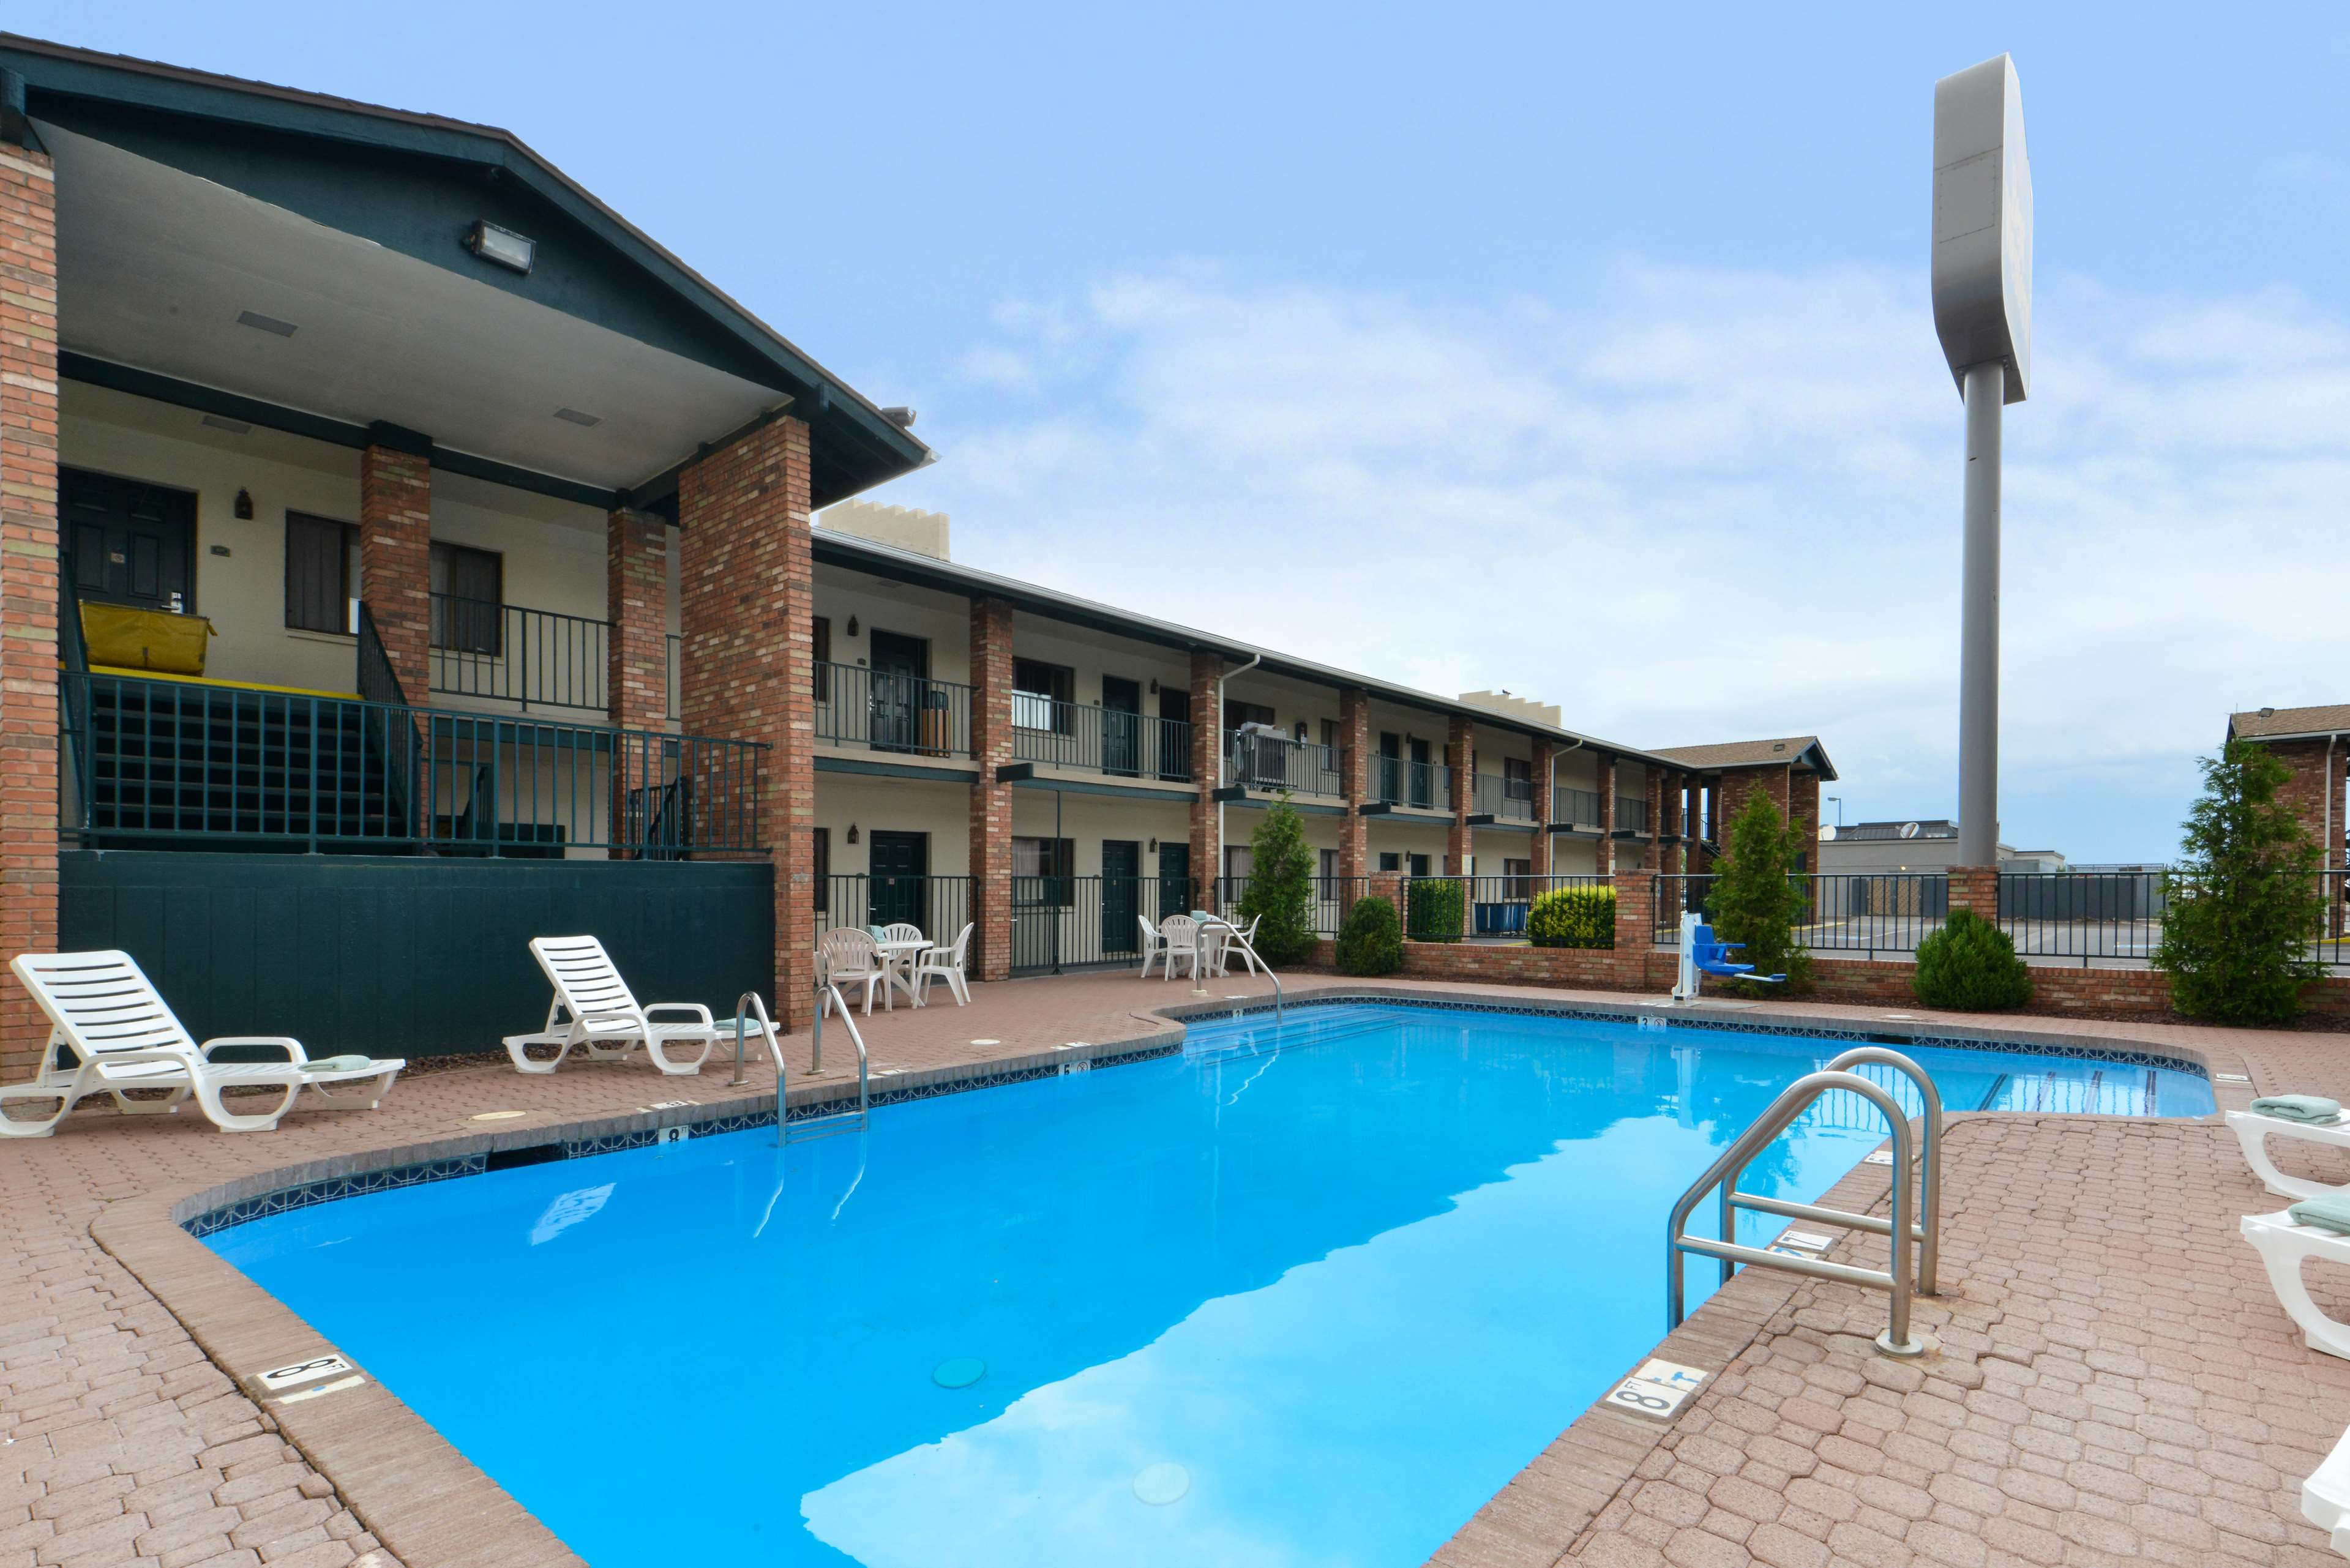 Best western arizonian inn coupons near me in holbrook Holbrook swimming pool opening times